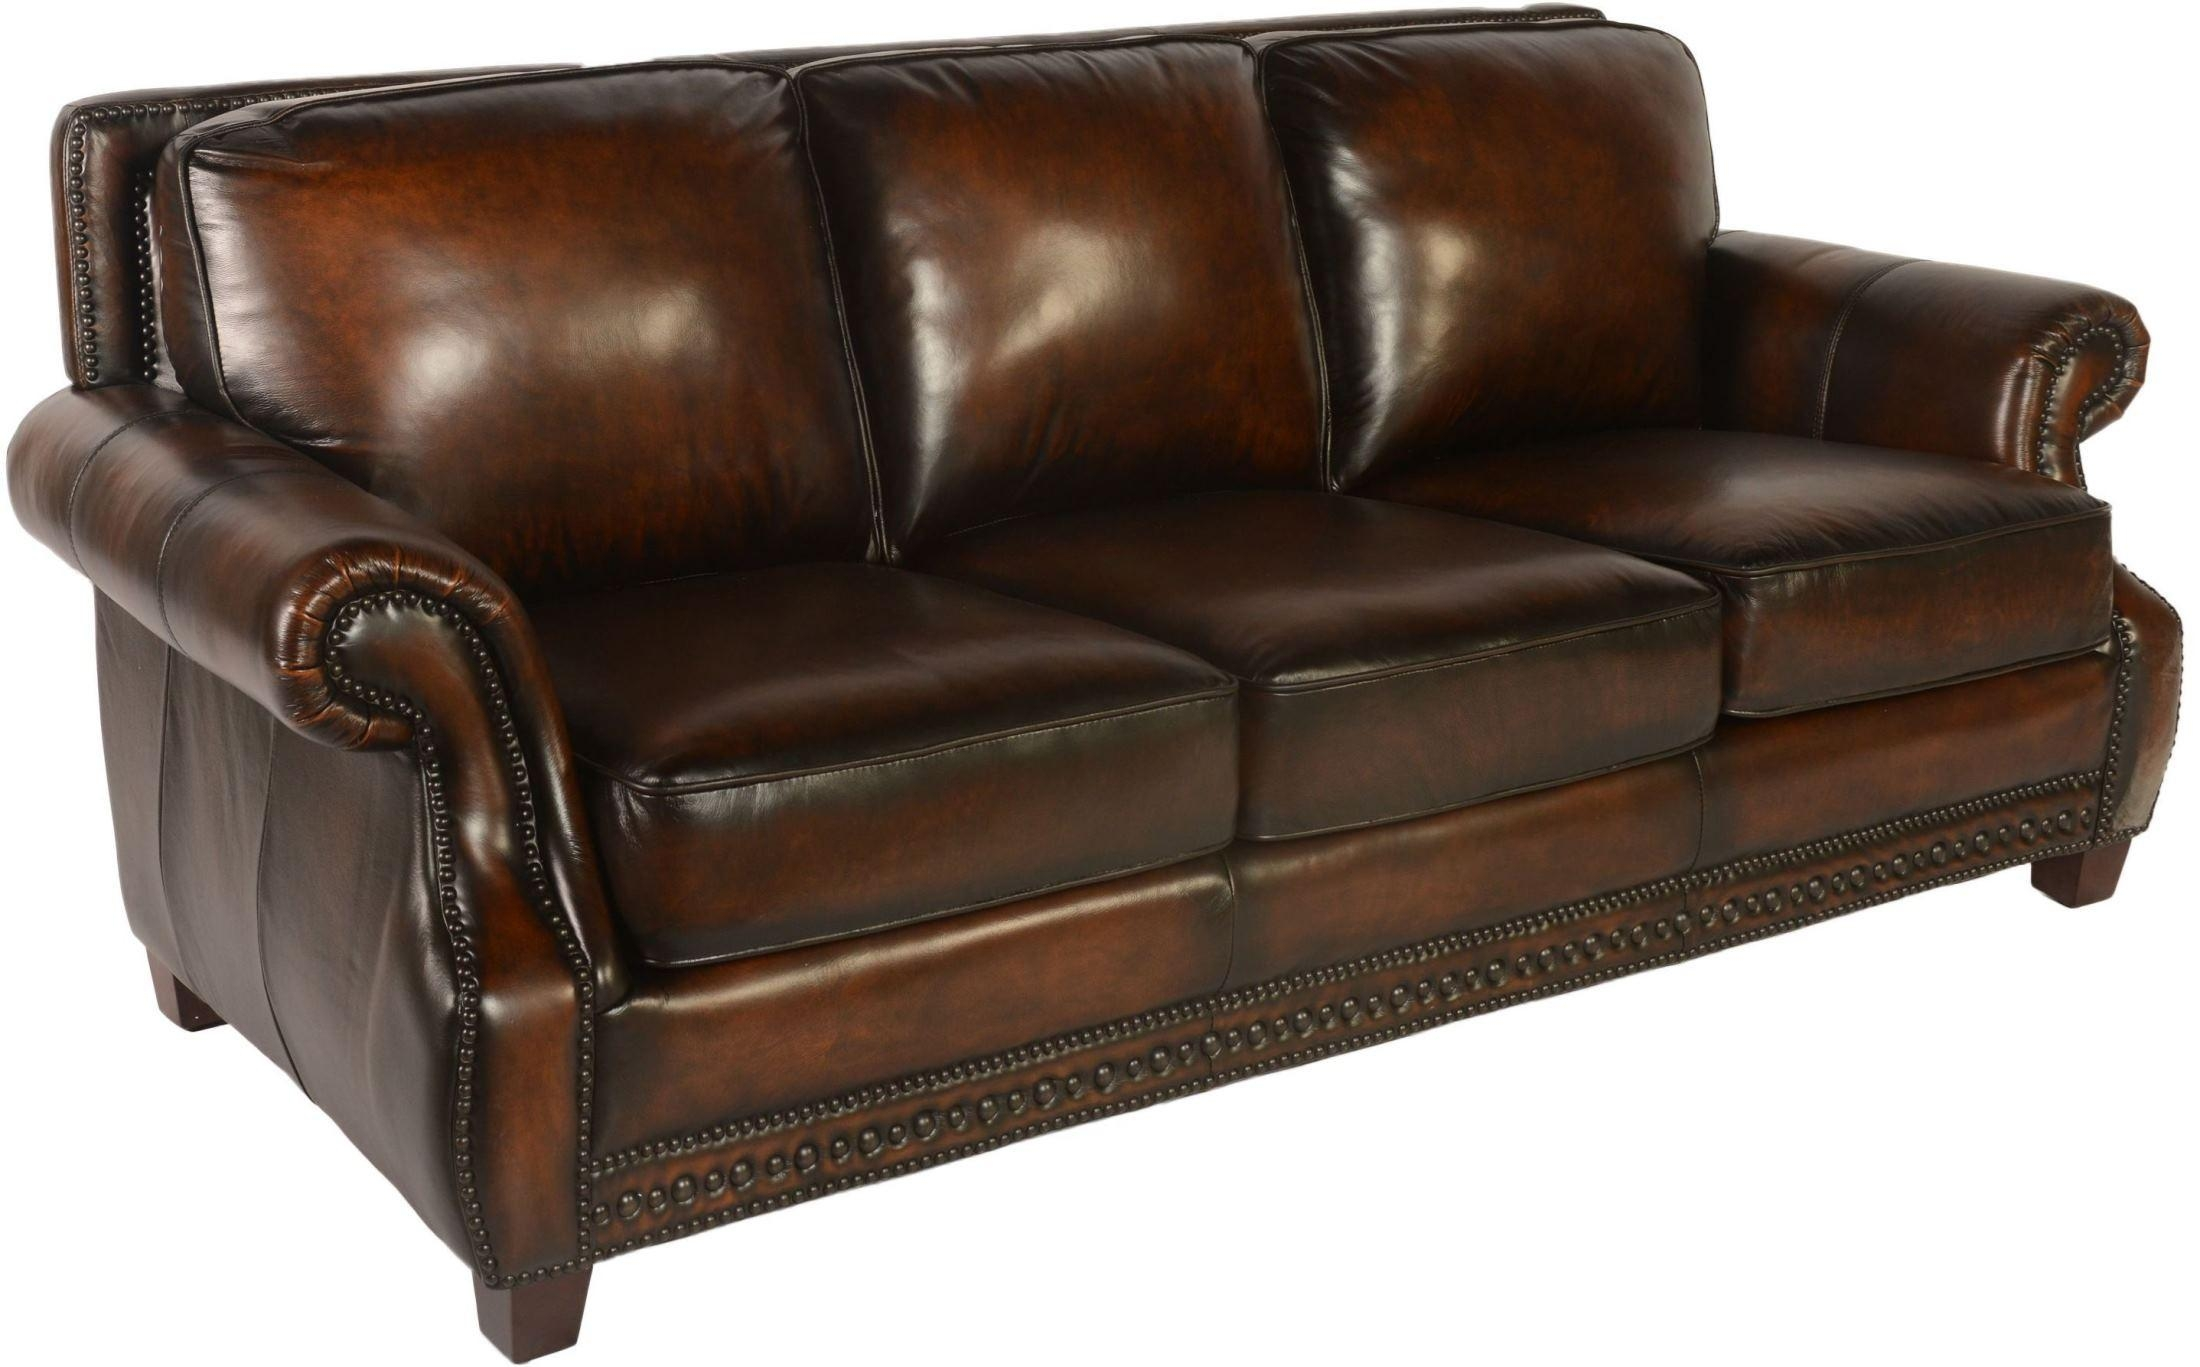 Prato Cocoa Brompton Leather Sofa From Lazzaro | Coleman Furniture Pertaining To Brompton Leather Sofas (Image 13 of 20)